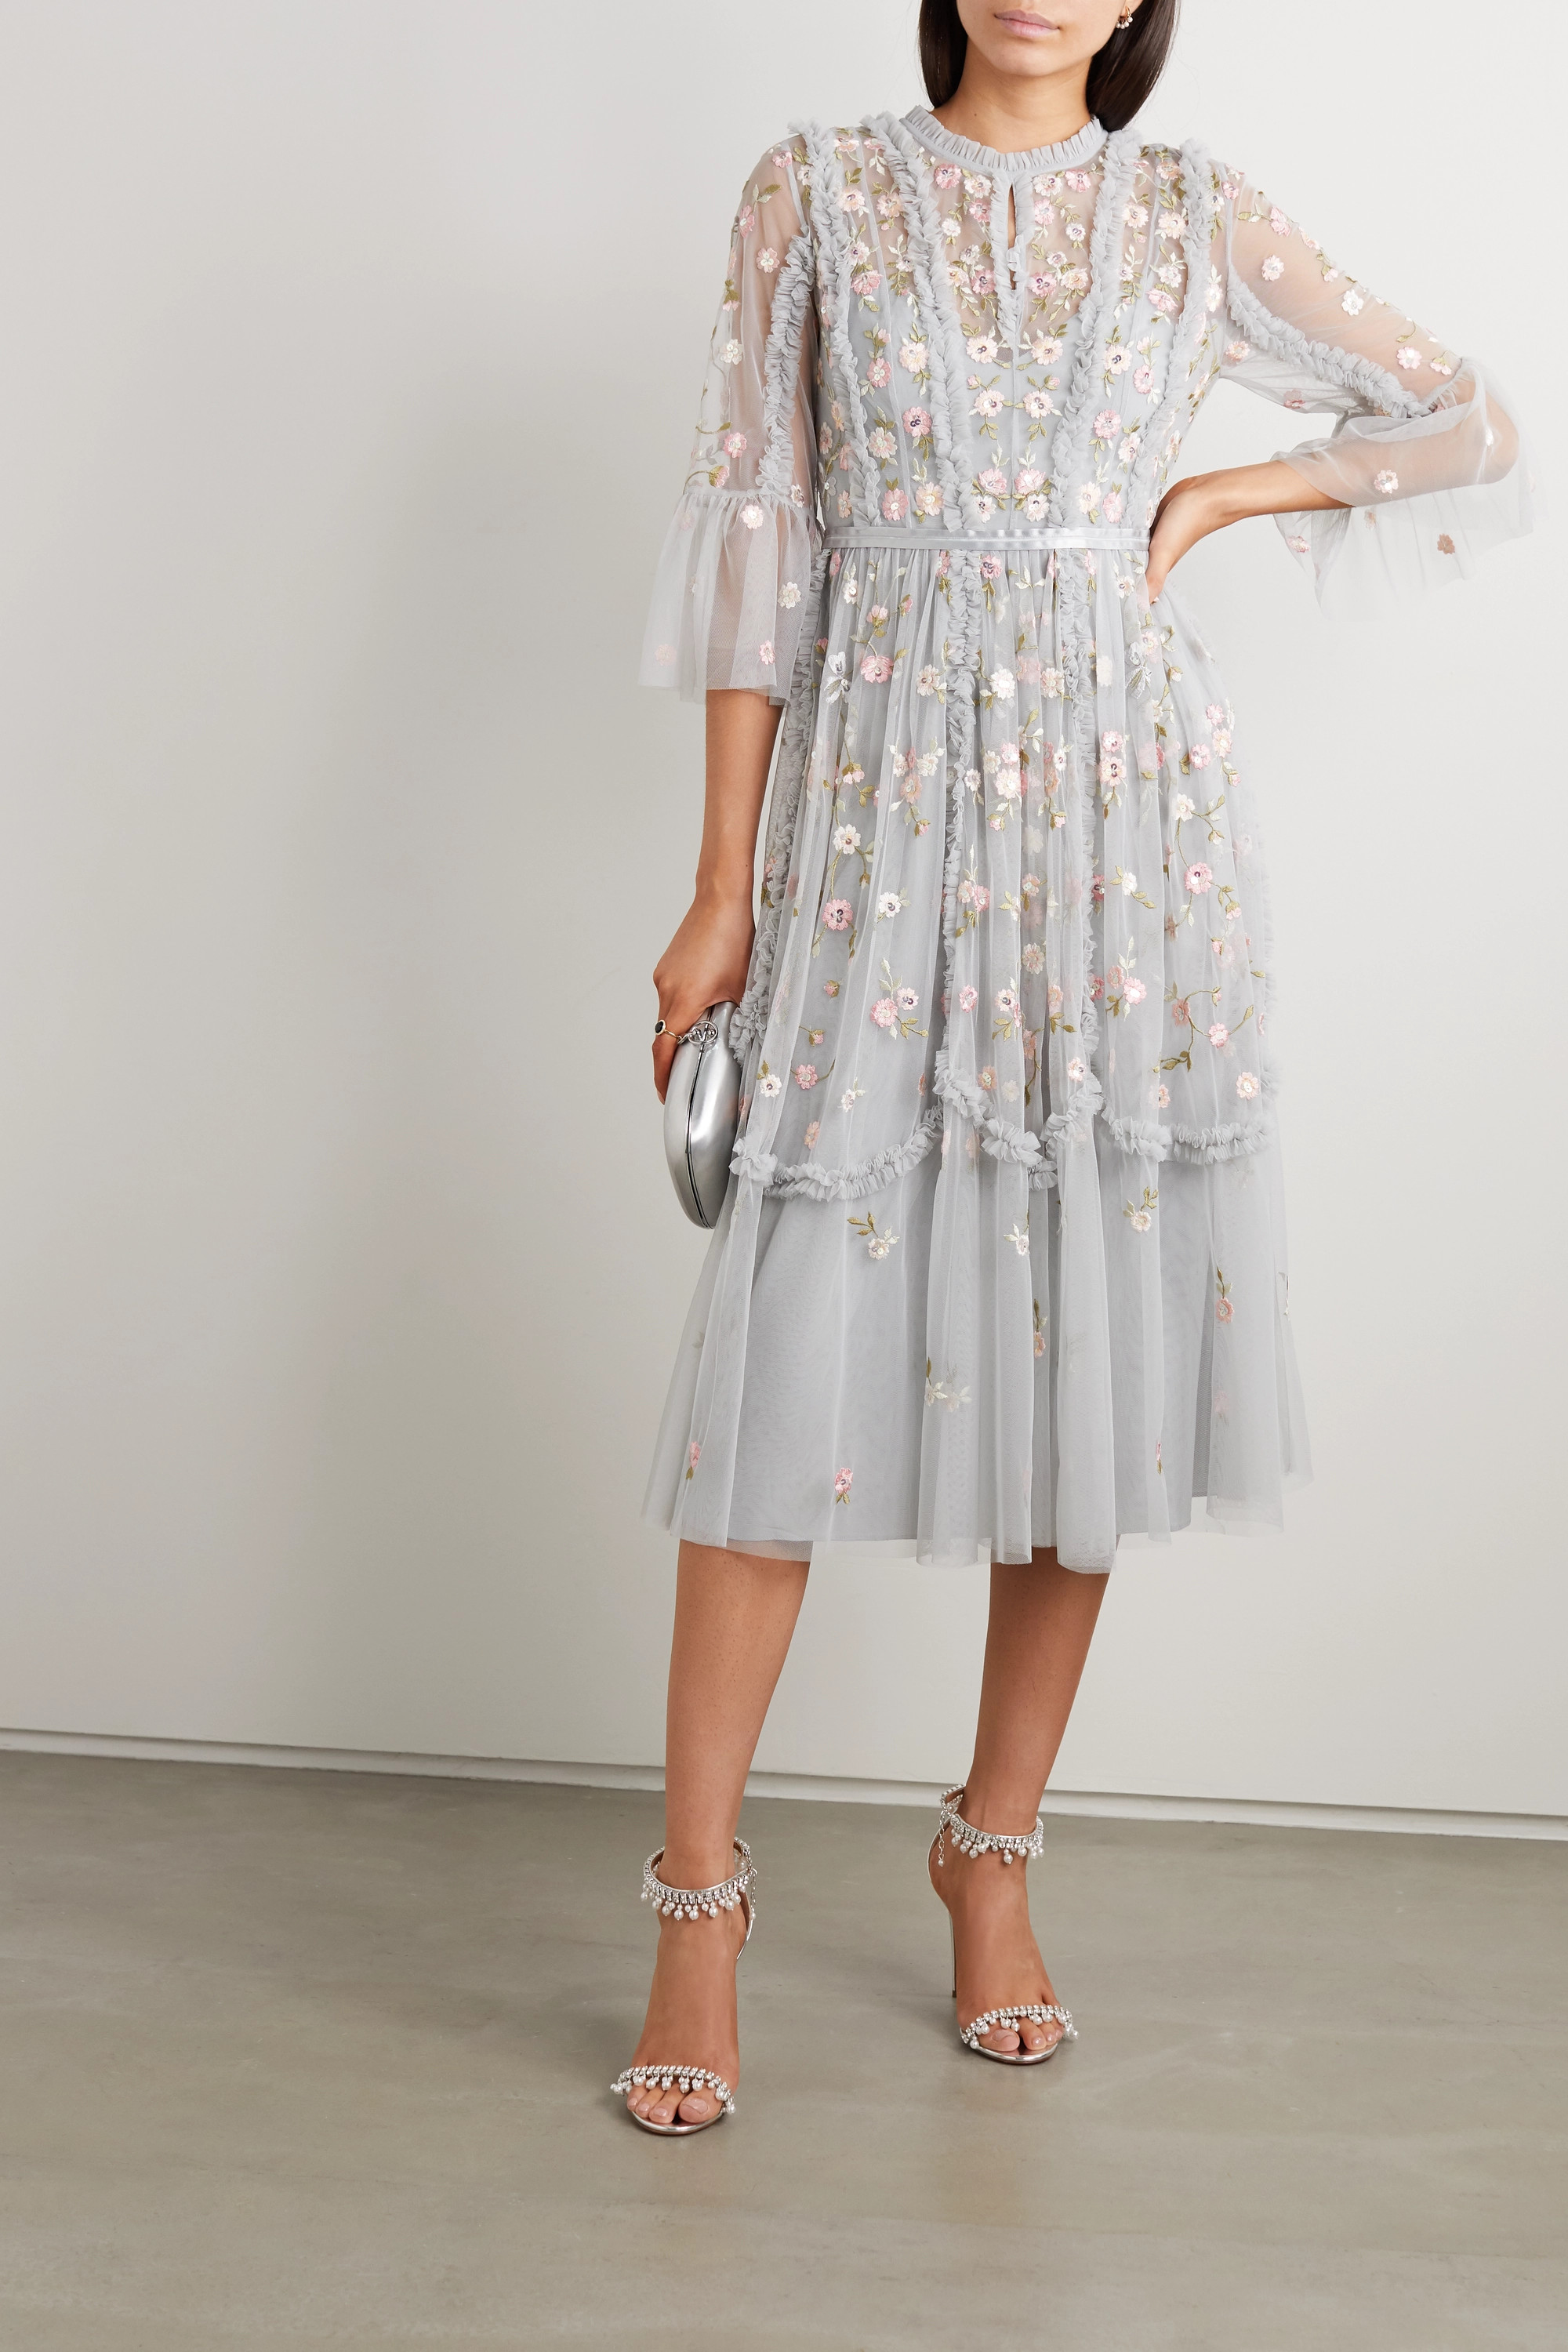 Wallflower ruffled embellished embroidered tulle dress